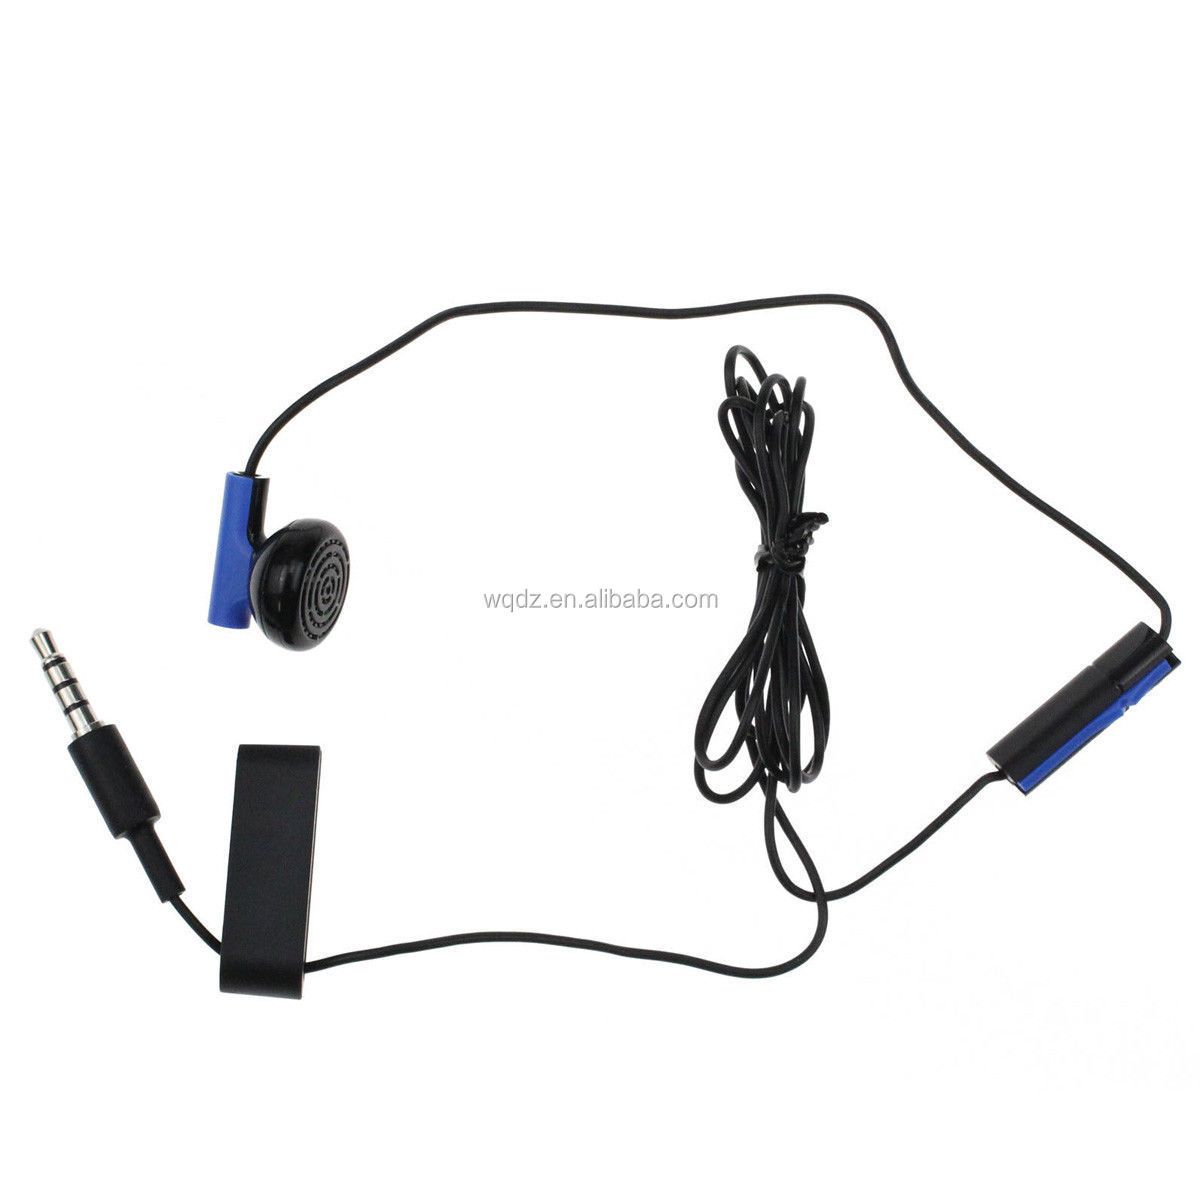 3.5mm Video Game Earphone with Mic for Sony Playstation 4 for PS 4 PS4 Controller